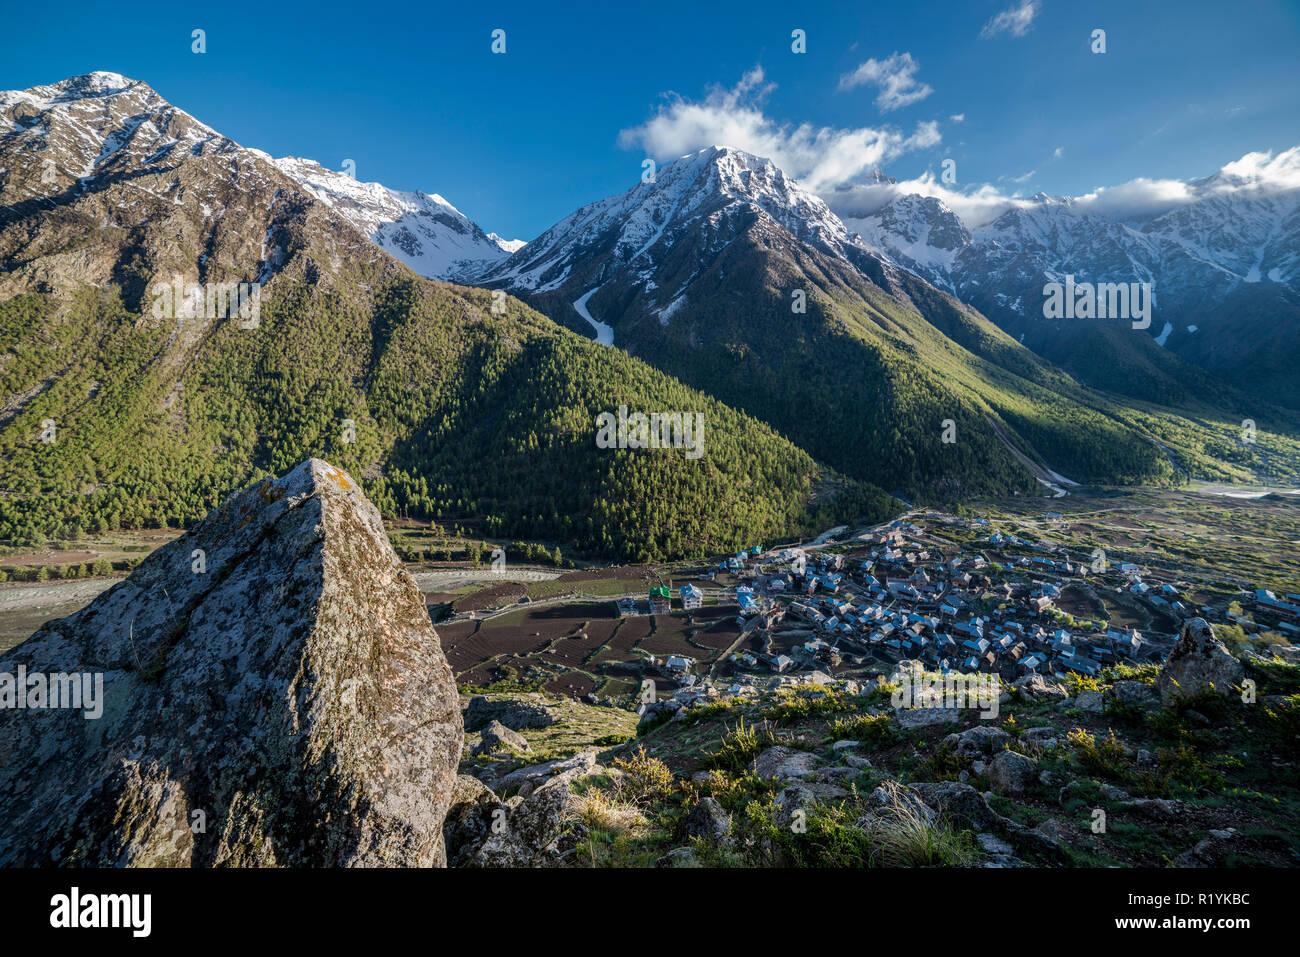 Chitkul is the last village of Sangla Valley, located at 3.400 m and surounded by snow covered mountains Stock Photo